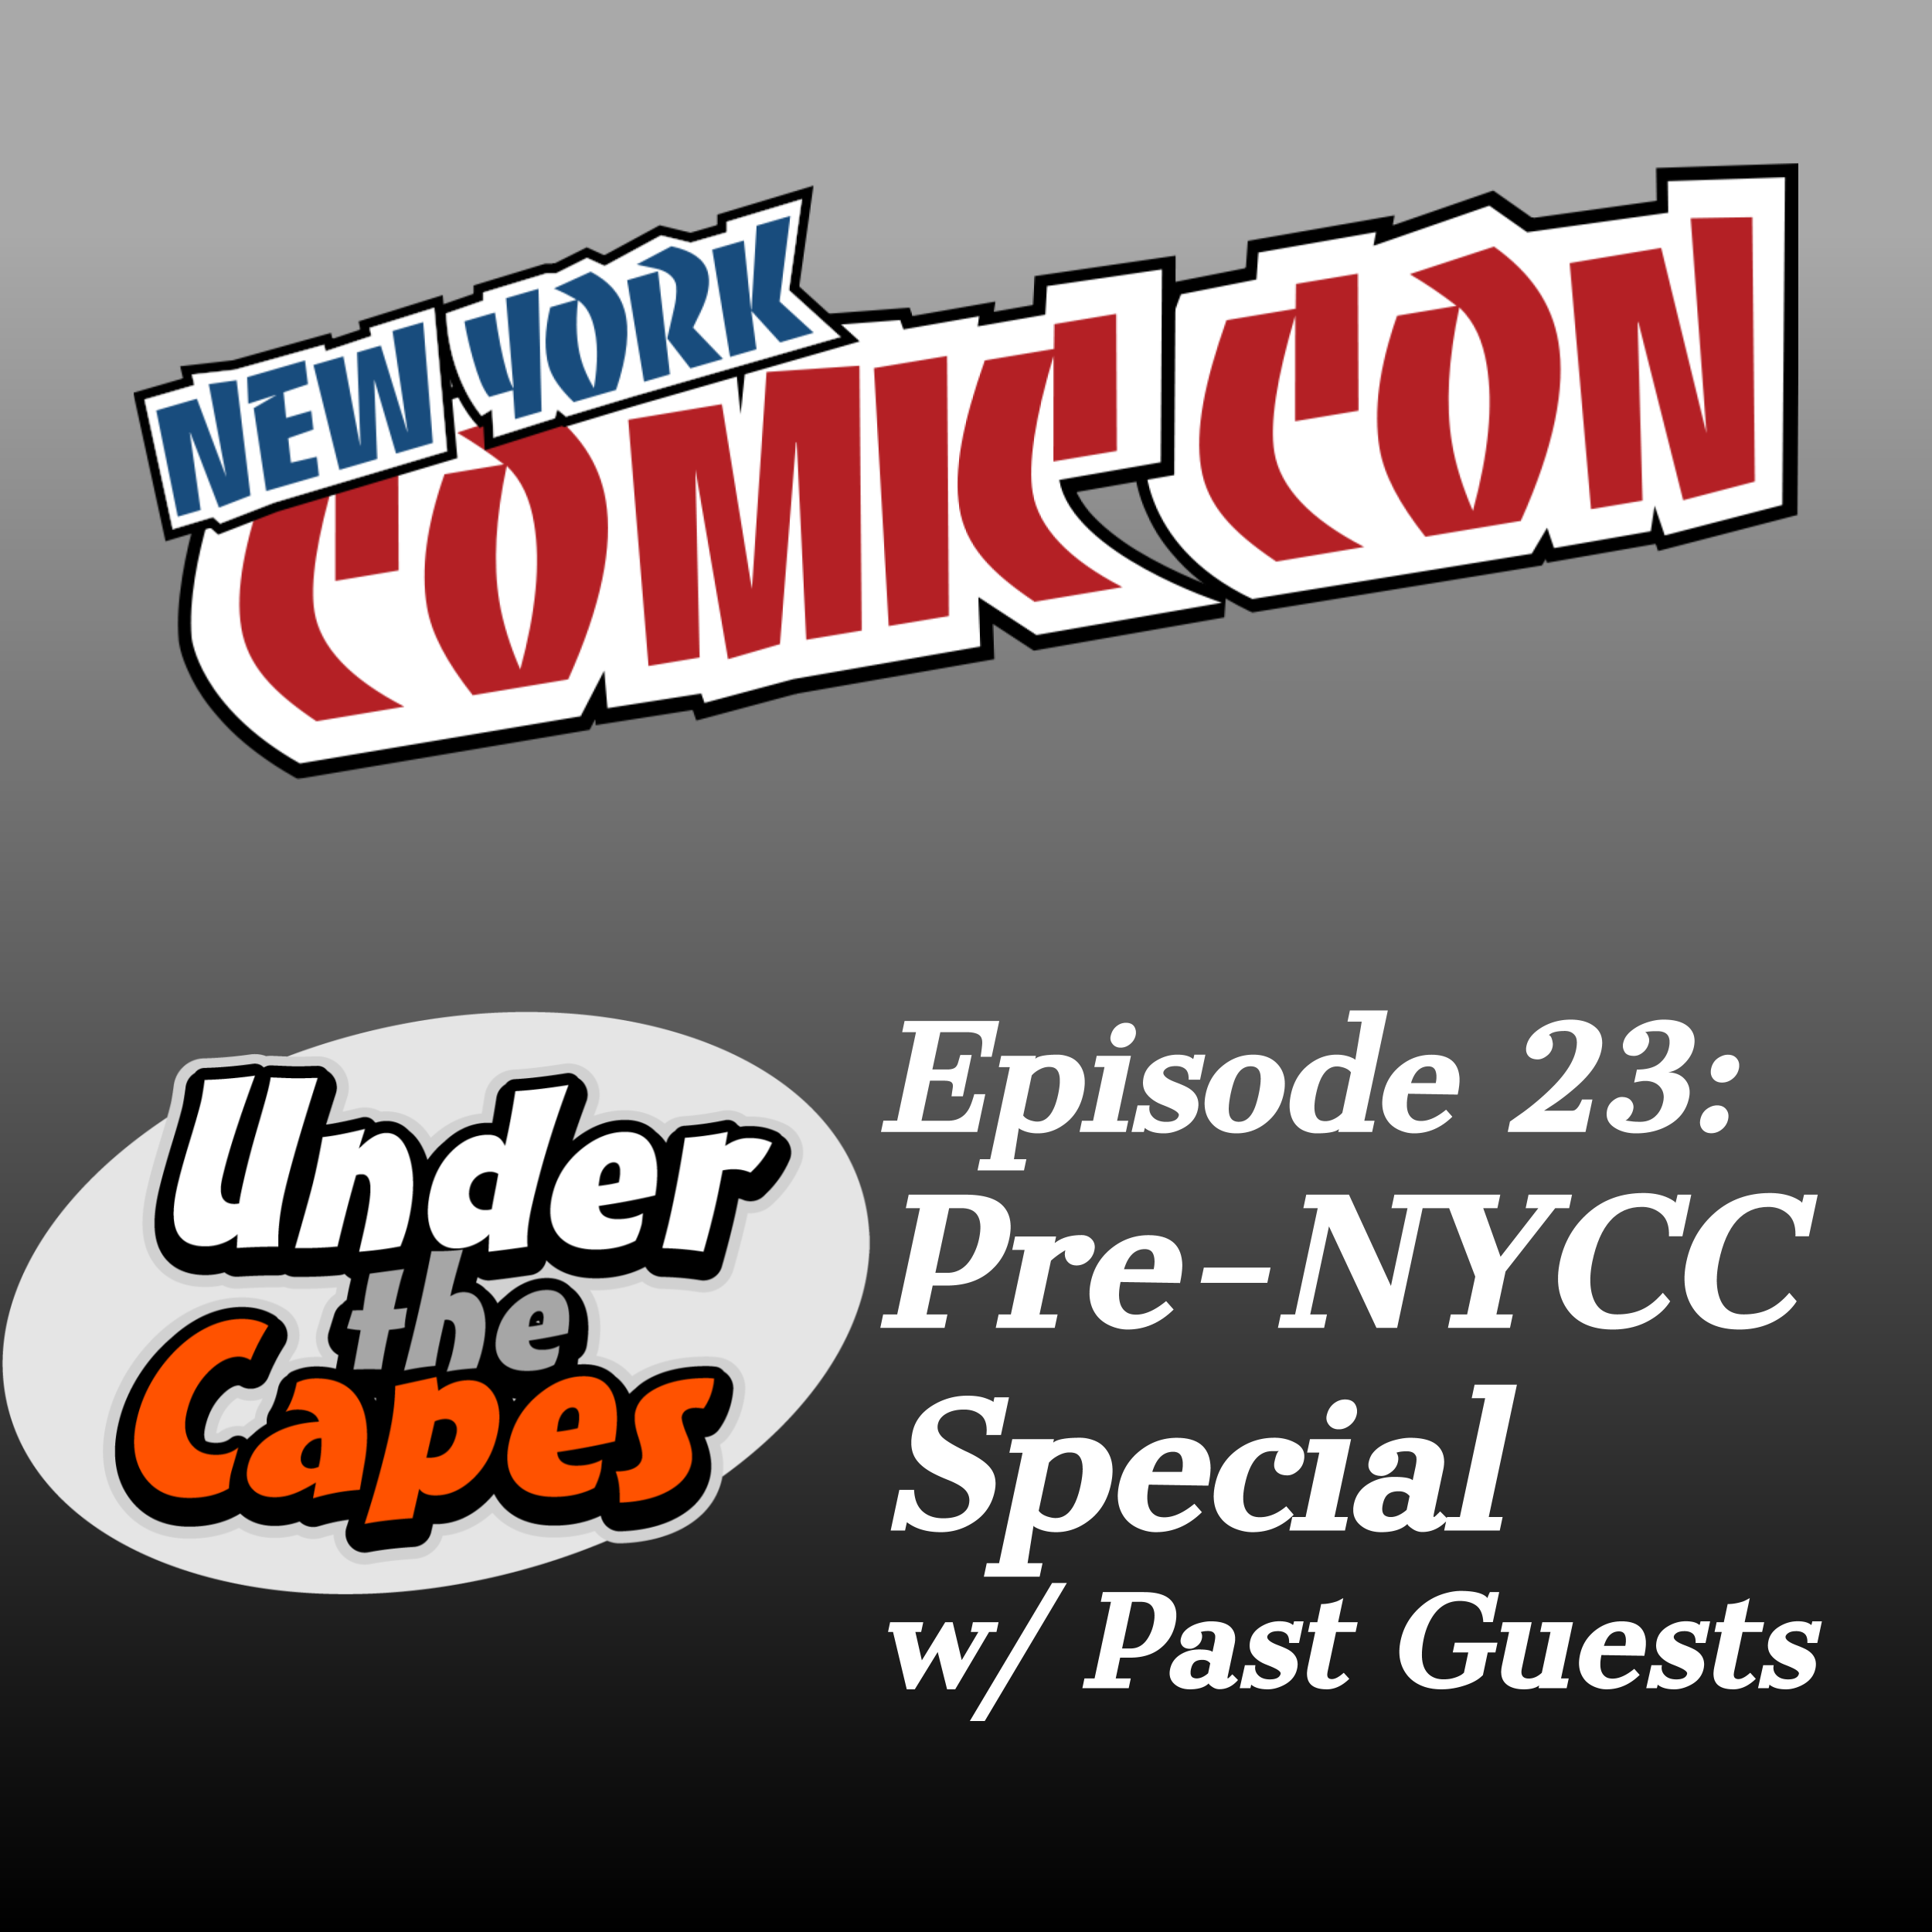 Episode 23: Pre-NYCC with Past Guests